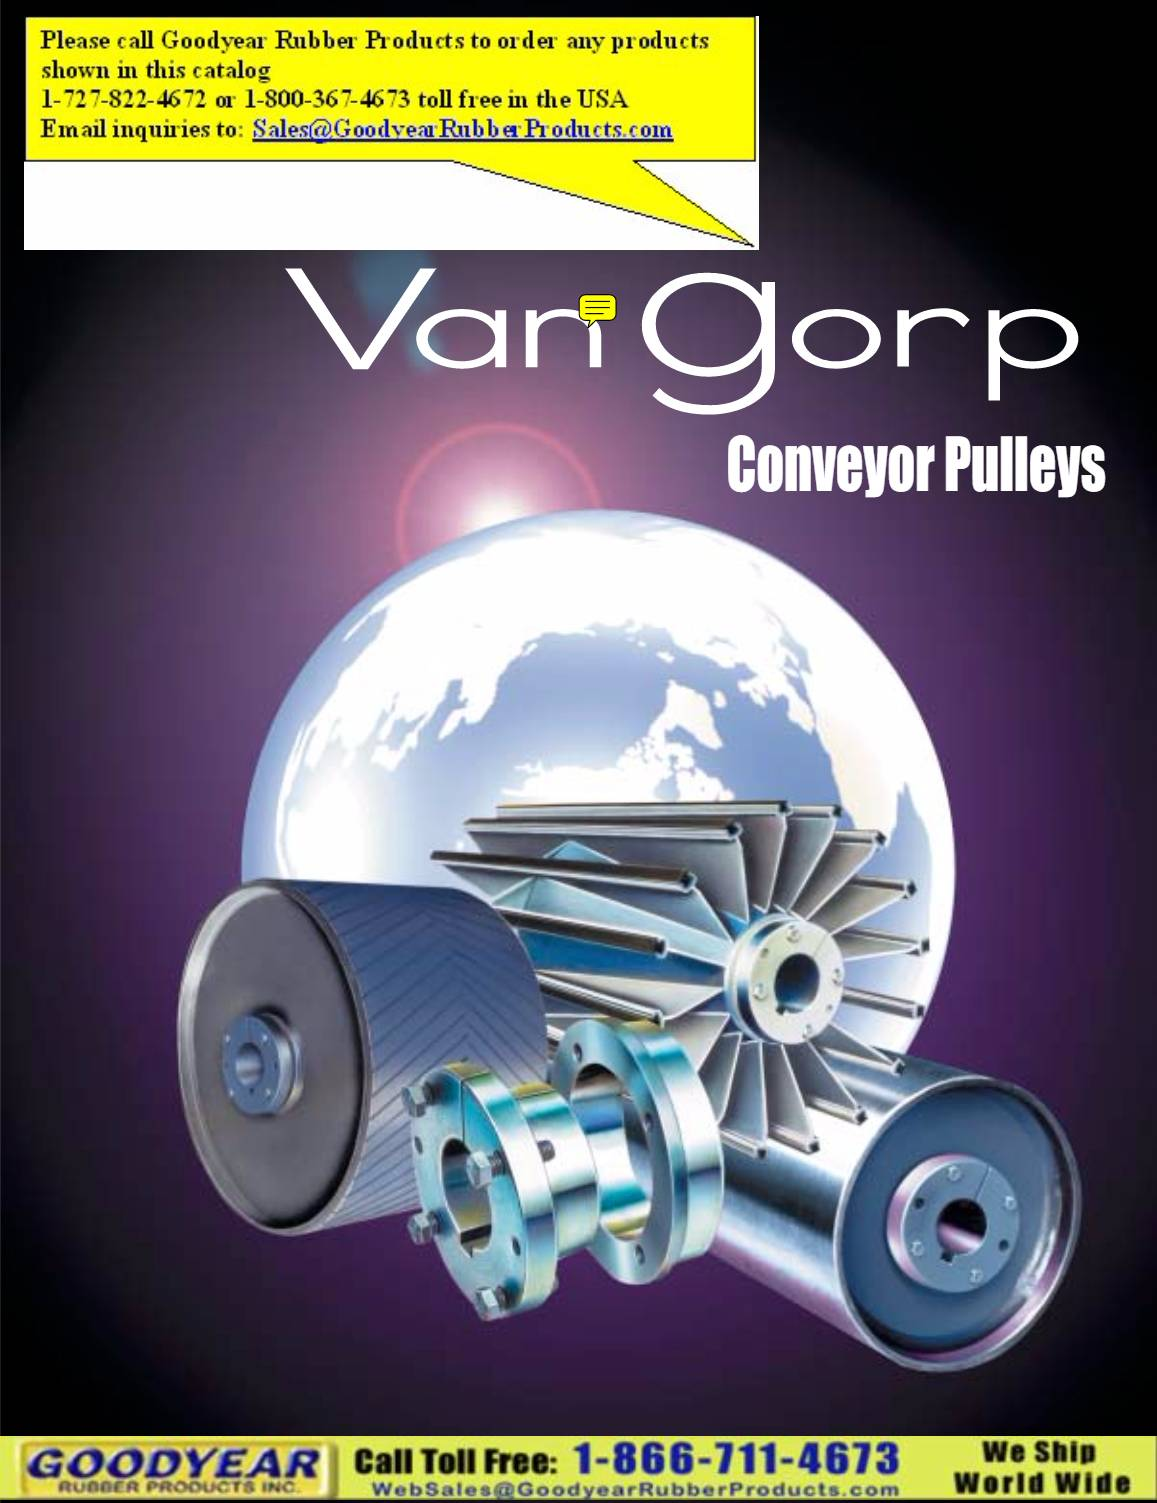 VanGorp Conveyor Pulleys